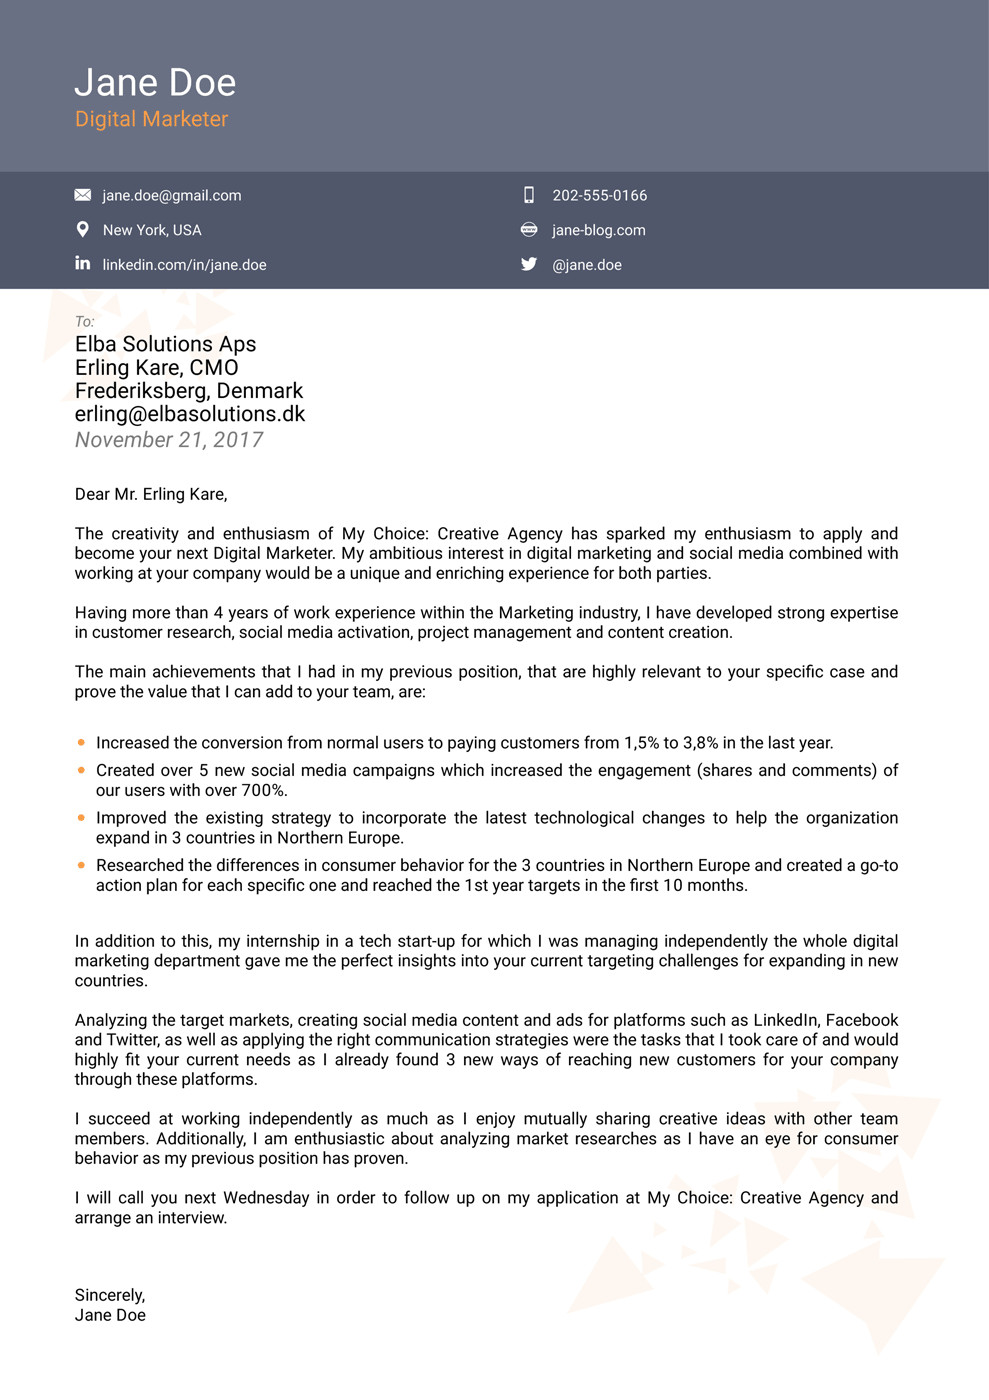 Modern Cover Letter Templates 8 Cover Letter Templates for 2019 [that Hr Will Love ]